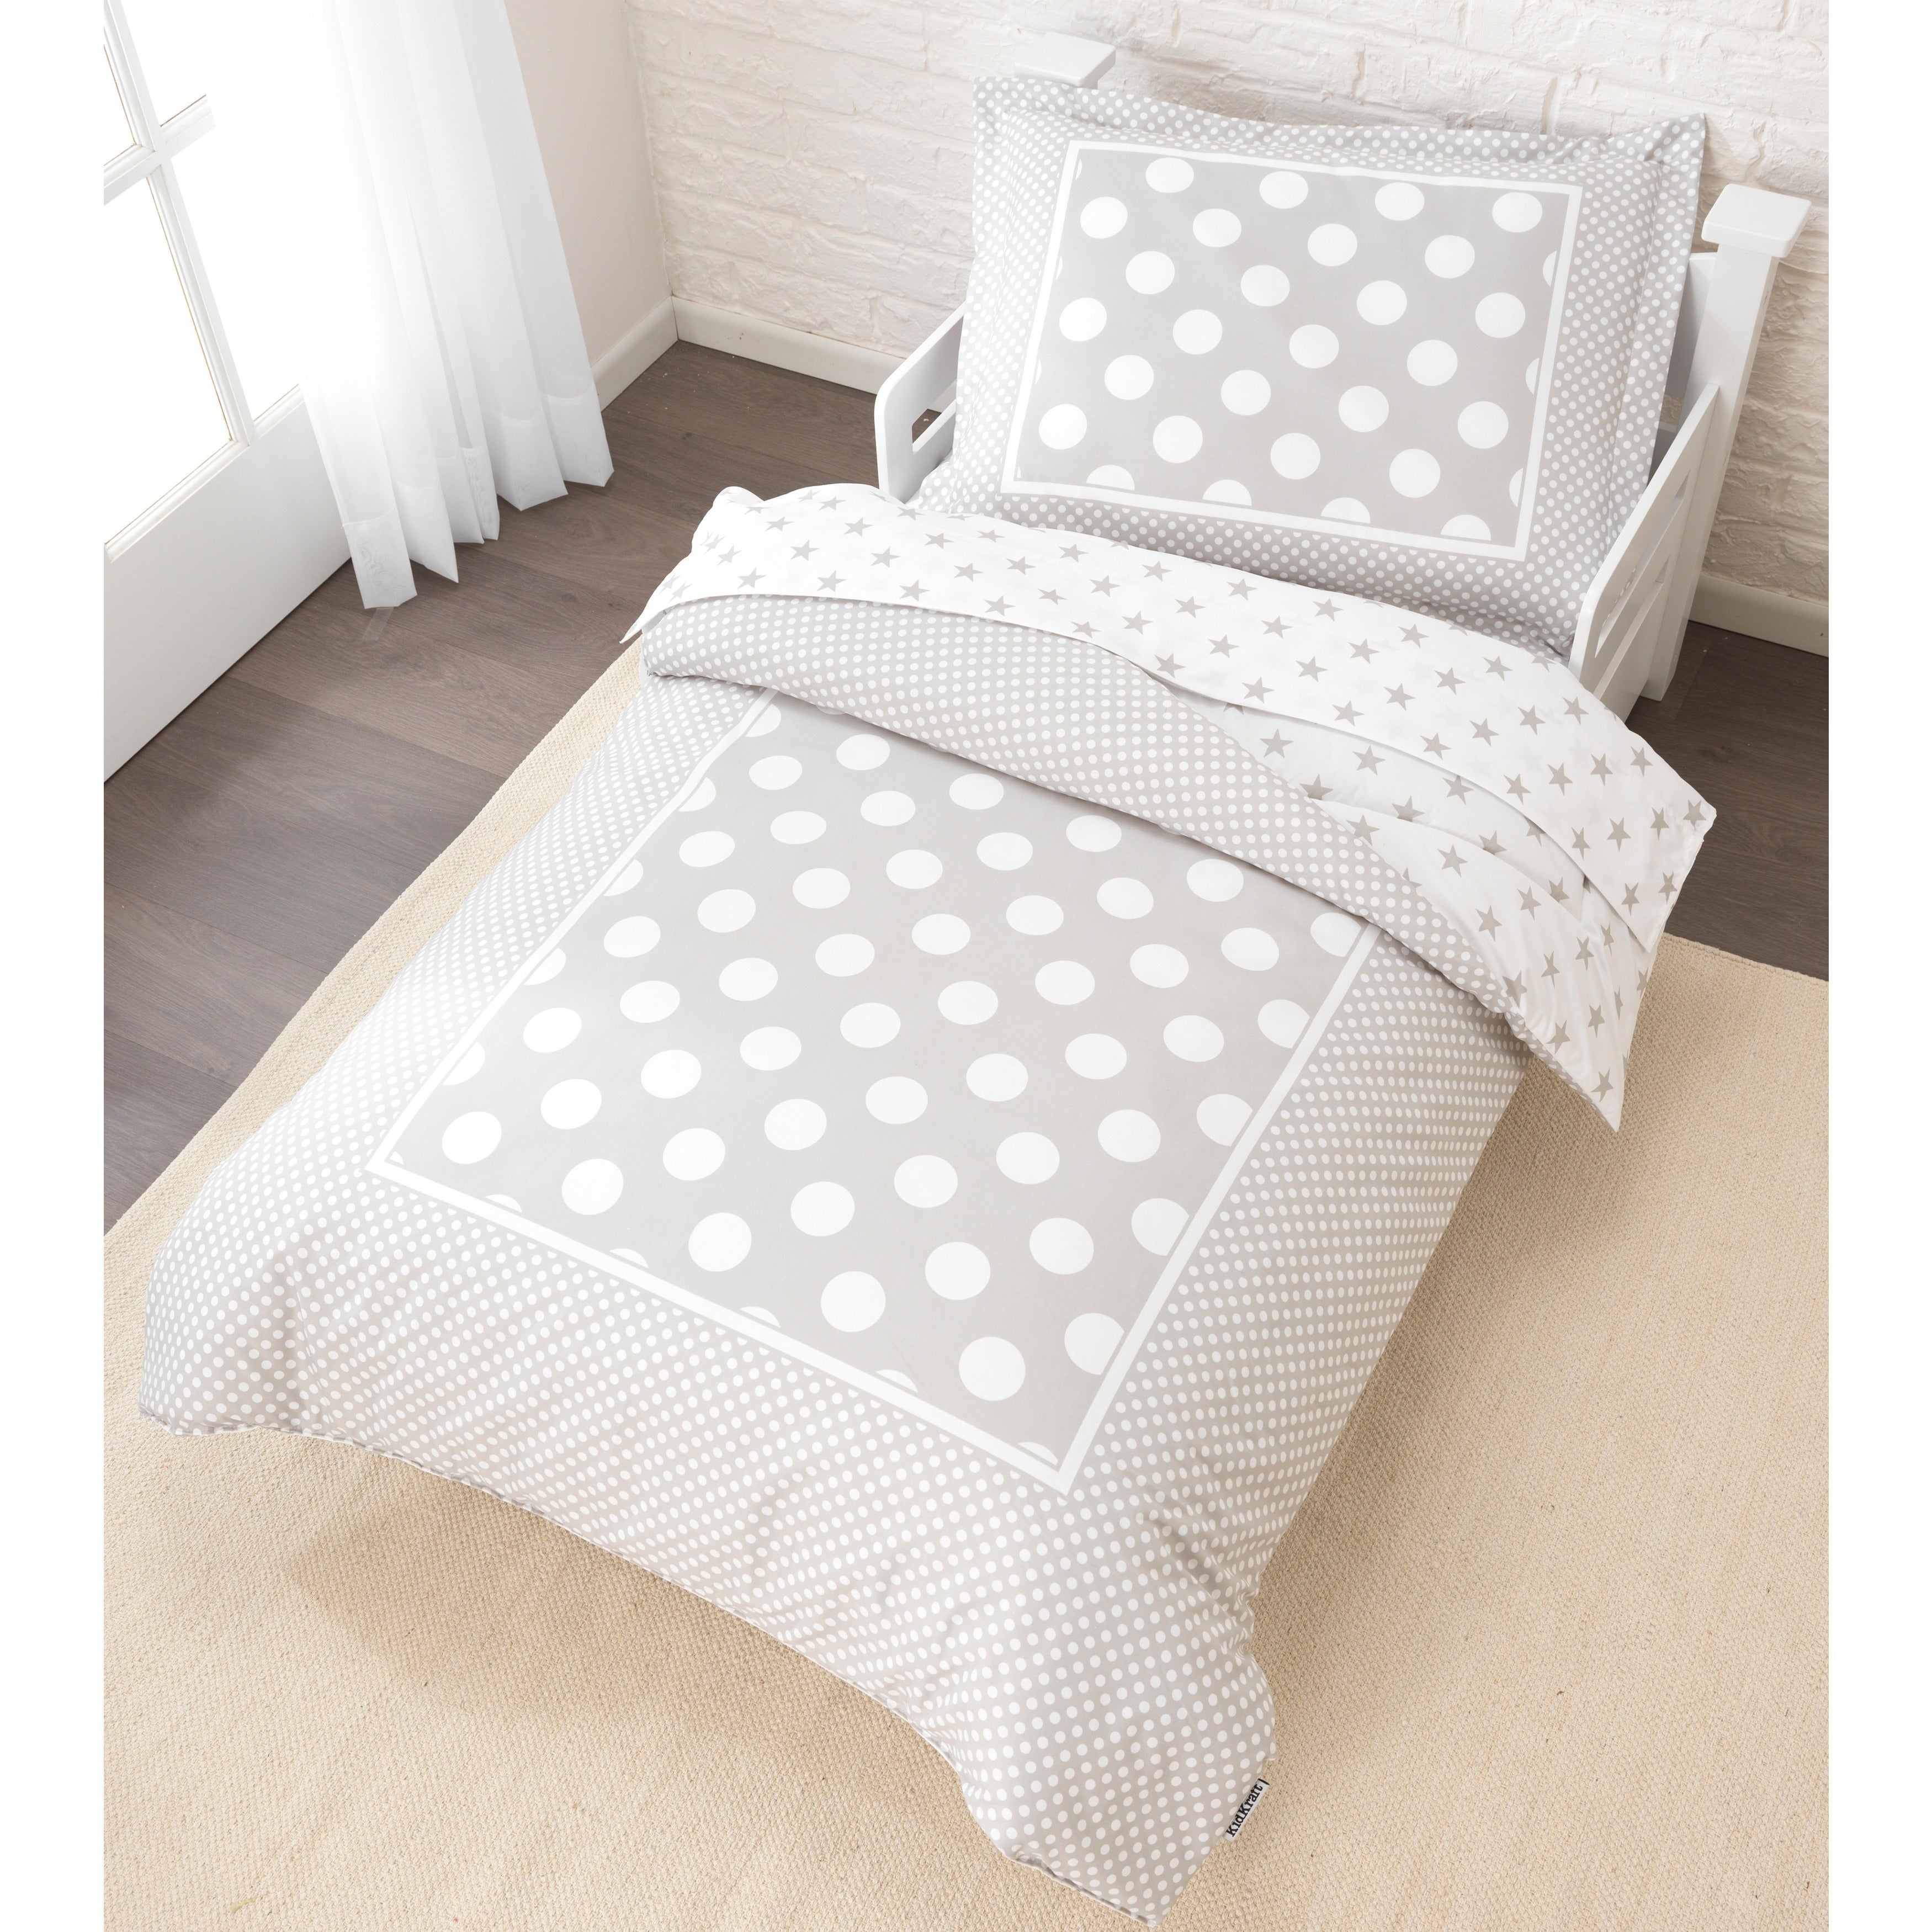 Stars And Polka Dots 4 Piece Toddler Bedding Set Overstock 9331903